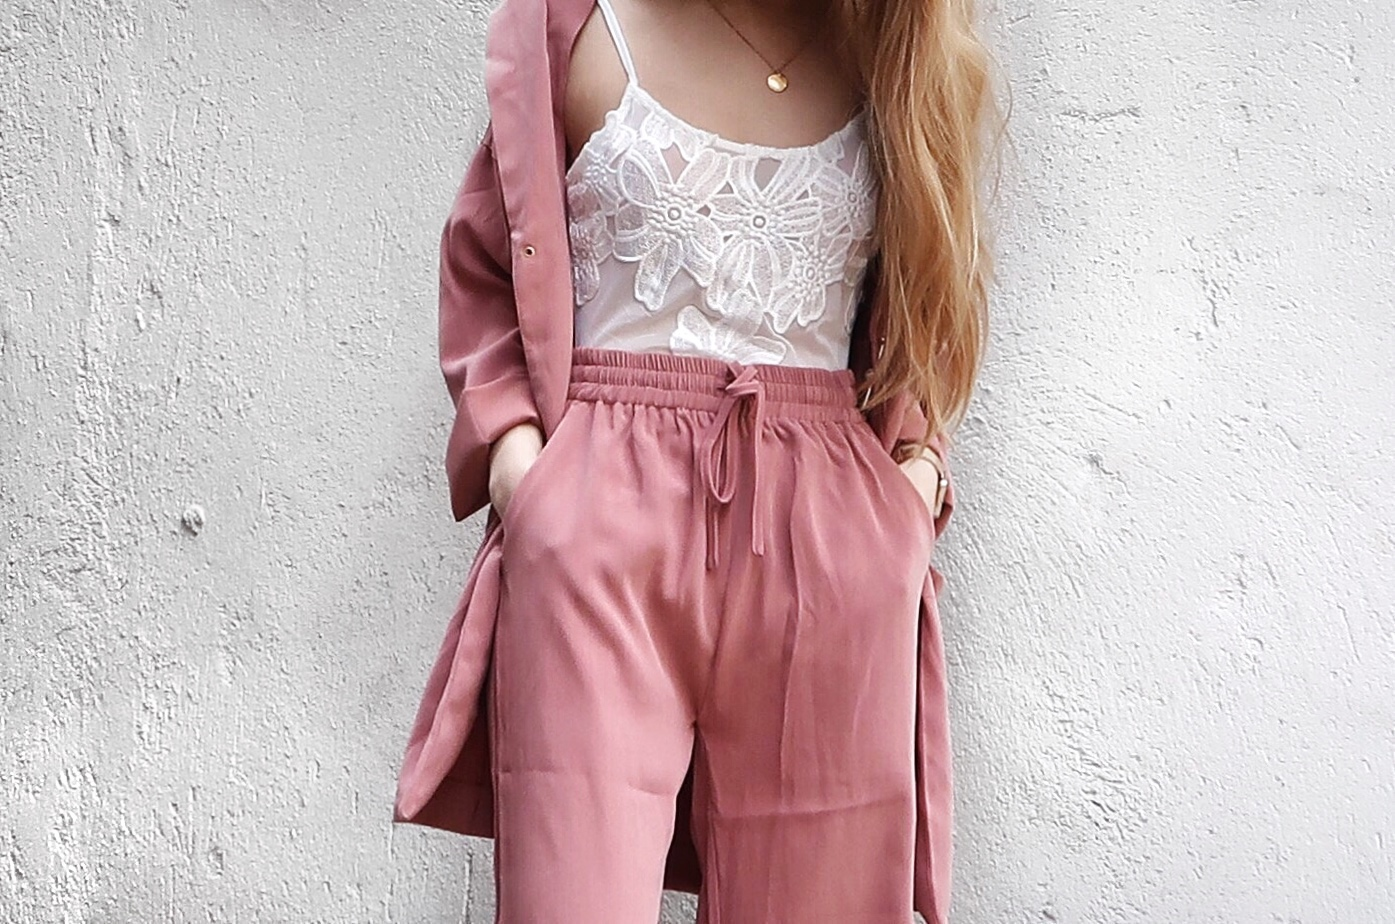 Boohoo White Lingerie and Black Sandals, Yesstyle Pink Pantsuit